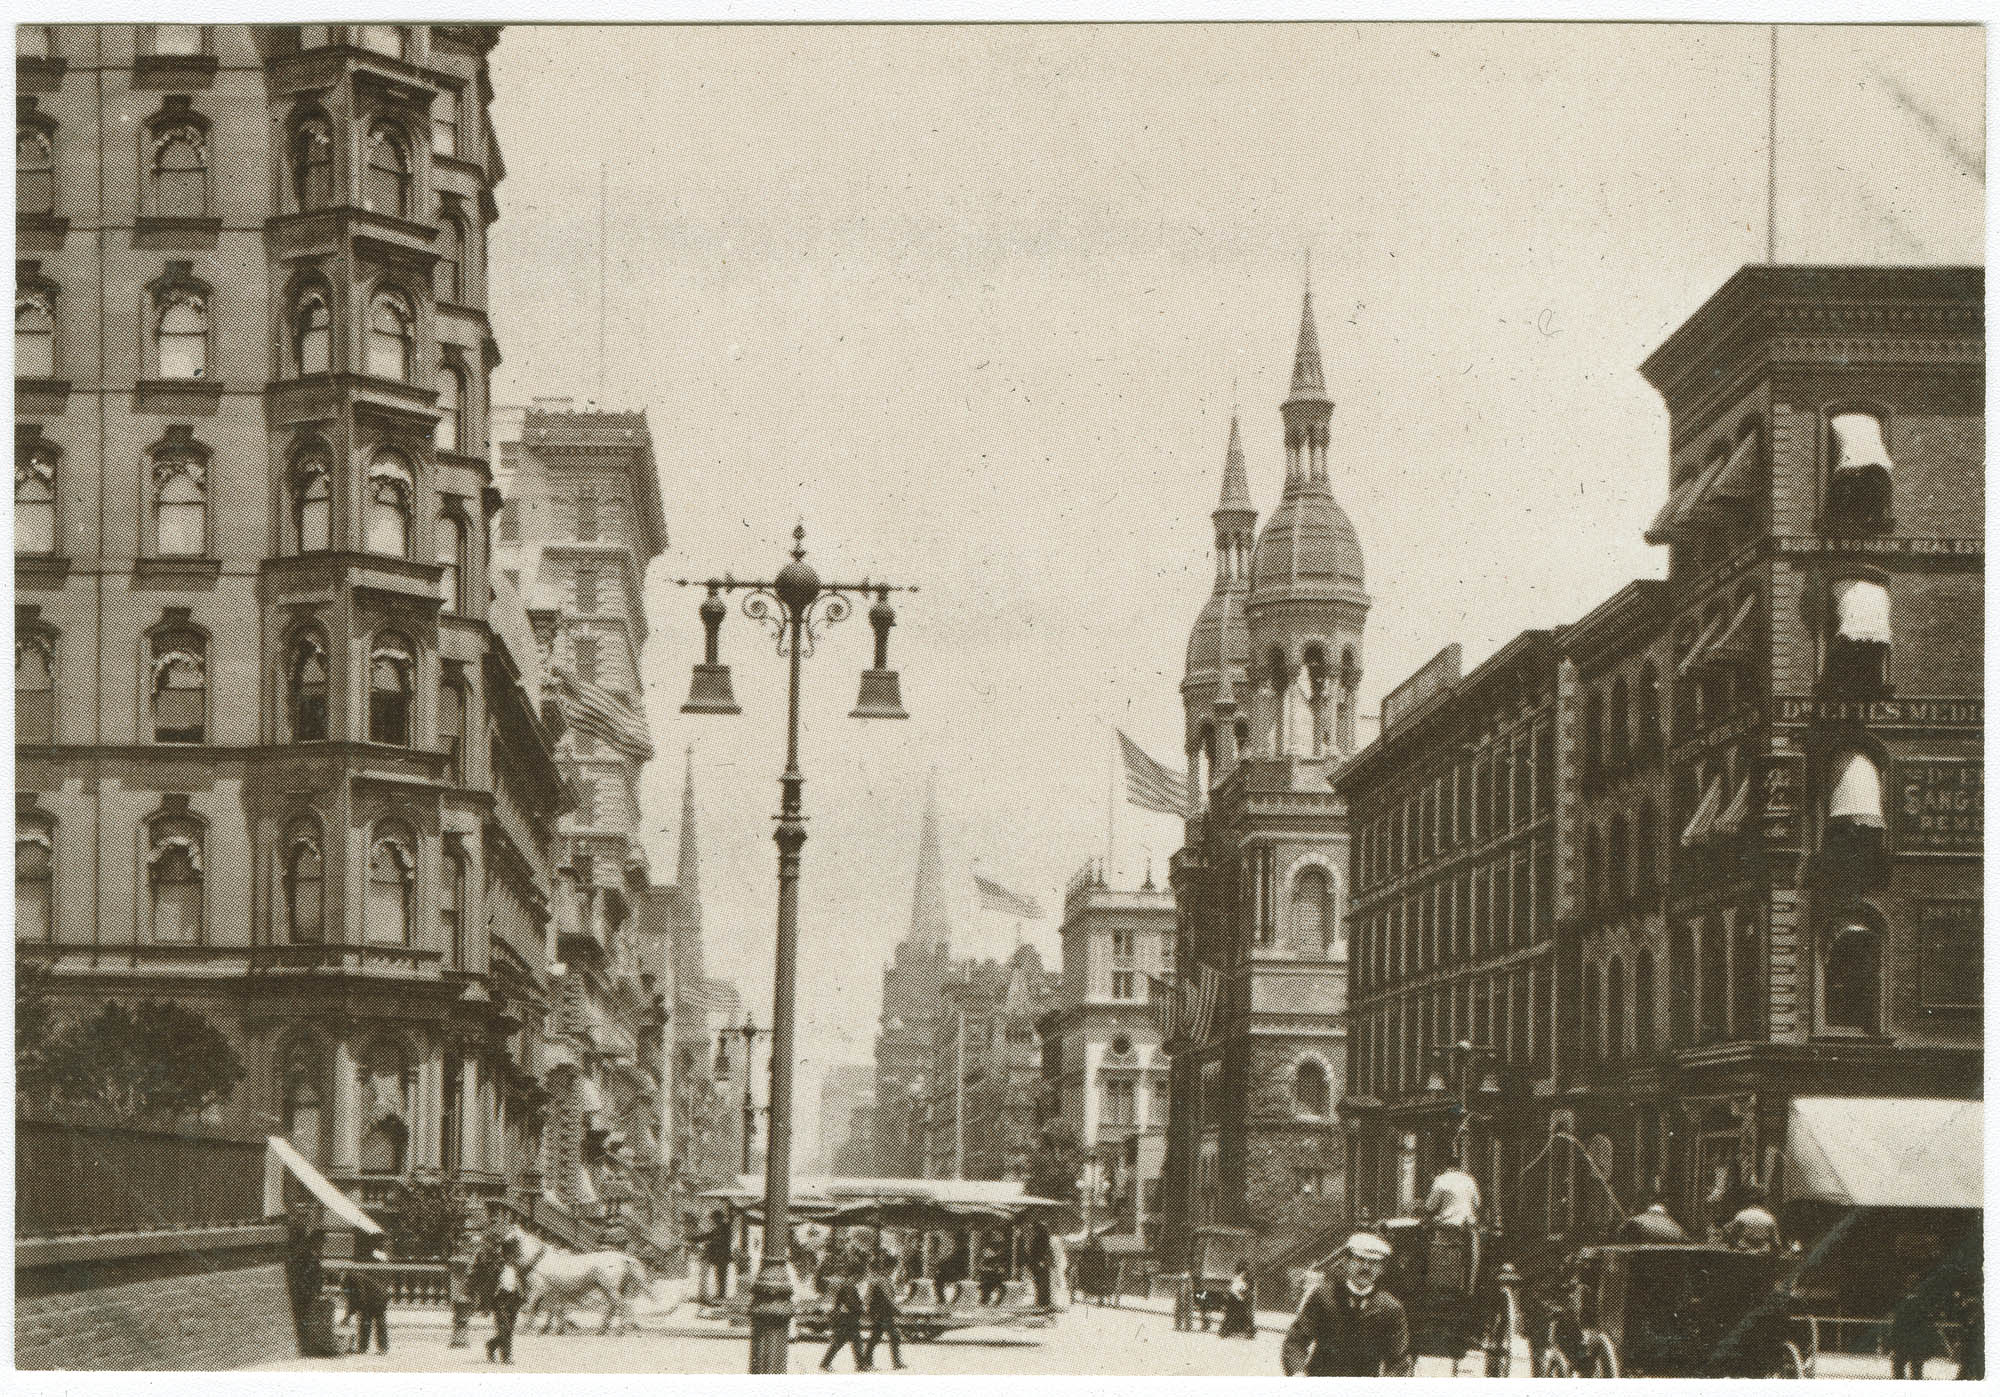 Corner of 5th Ave. and 42nd St., with the old Temple Emanu-El in the background, 1898